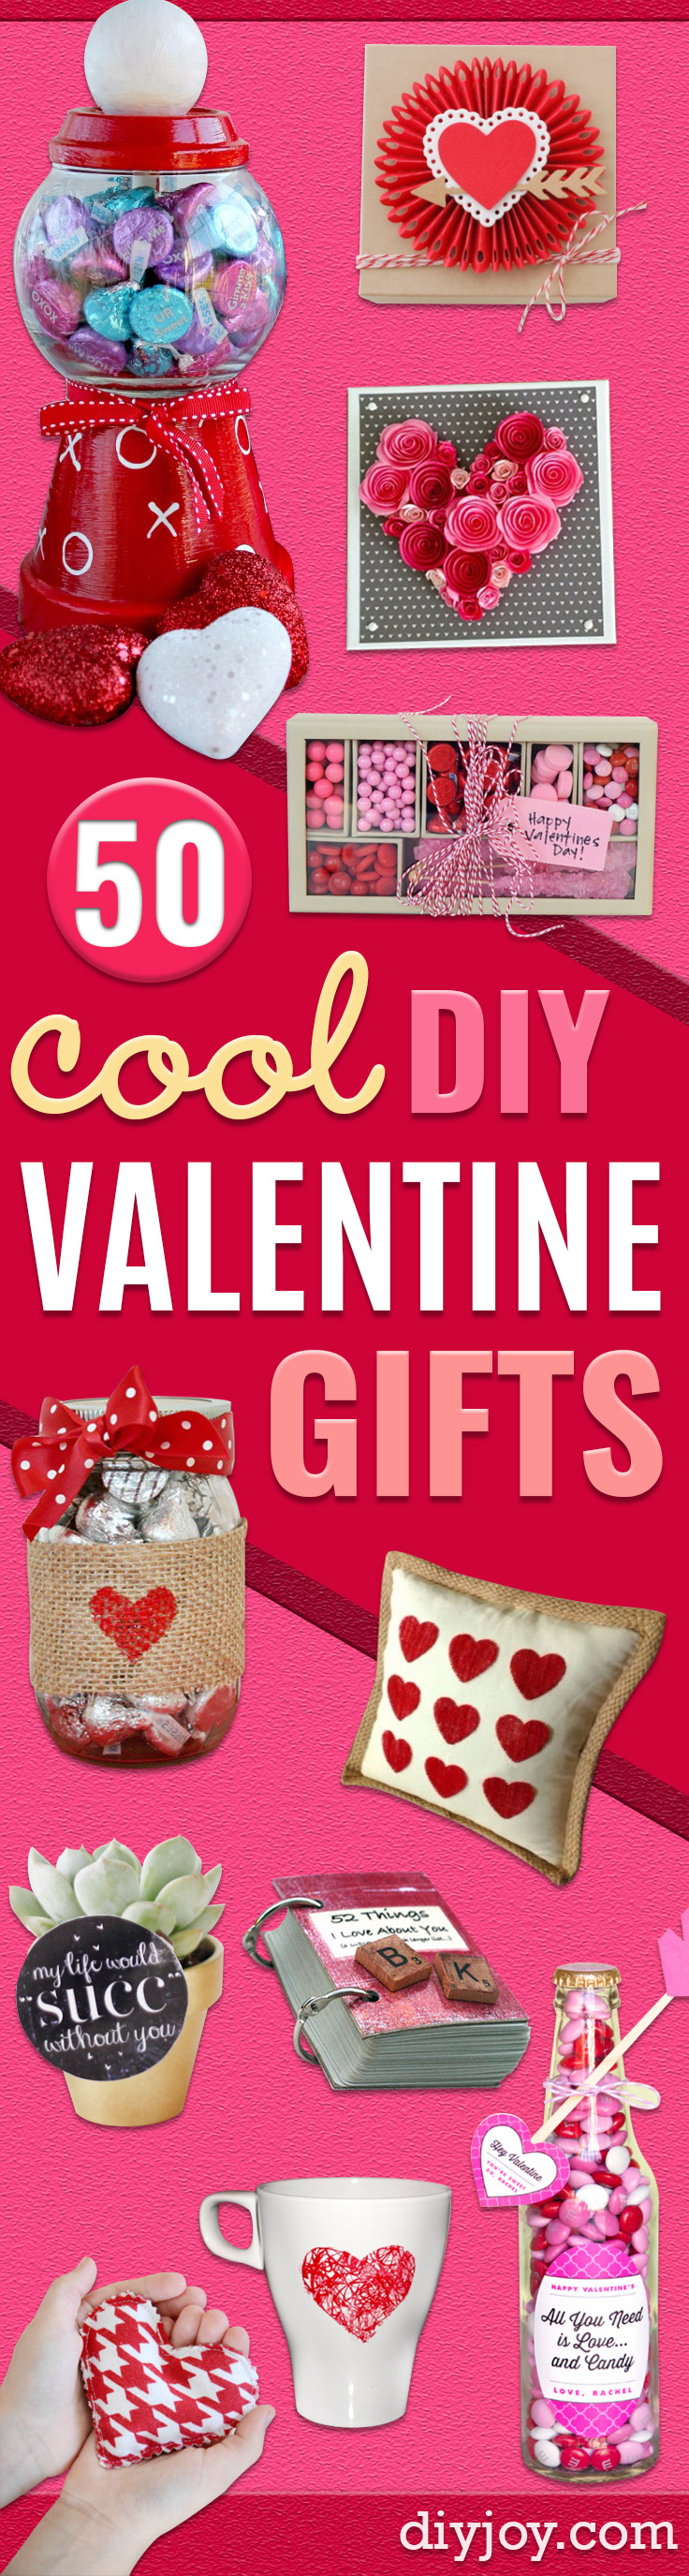 Best DIY Valentines Day Gifts - Cute Mason Jar Valentines Day Gifts and Crafts for Him and Her | Boyfriend, Girlfriend, Mom and Dad, Husband or Wife, Friends - Easy DIY Ideas for Valentines Day for Homemade Gift Giving and Room Decor | Creative Home Decor and Craft Projects for Teens, Teenagers, Kids and Adults